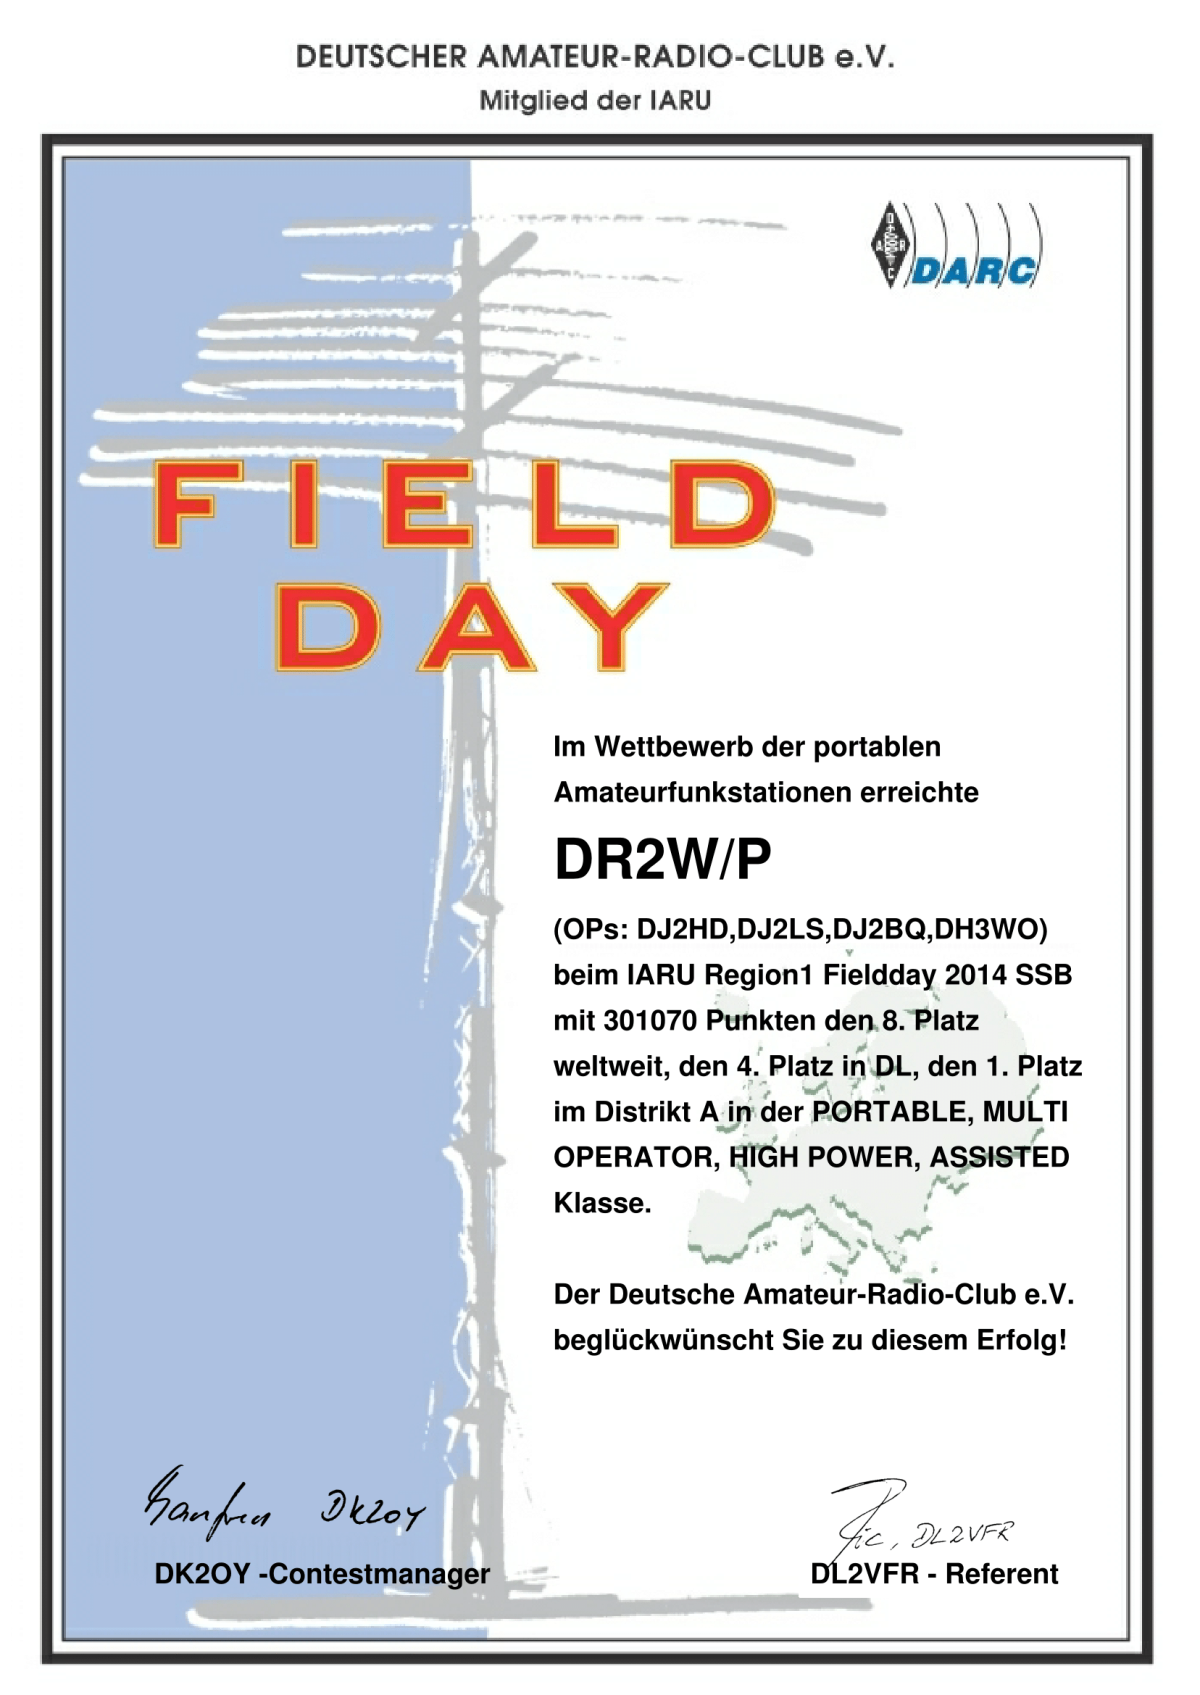 IARU FIELD DAY 4th DL, 1st District A